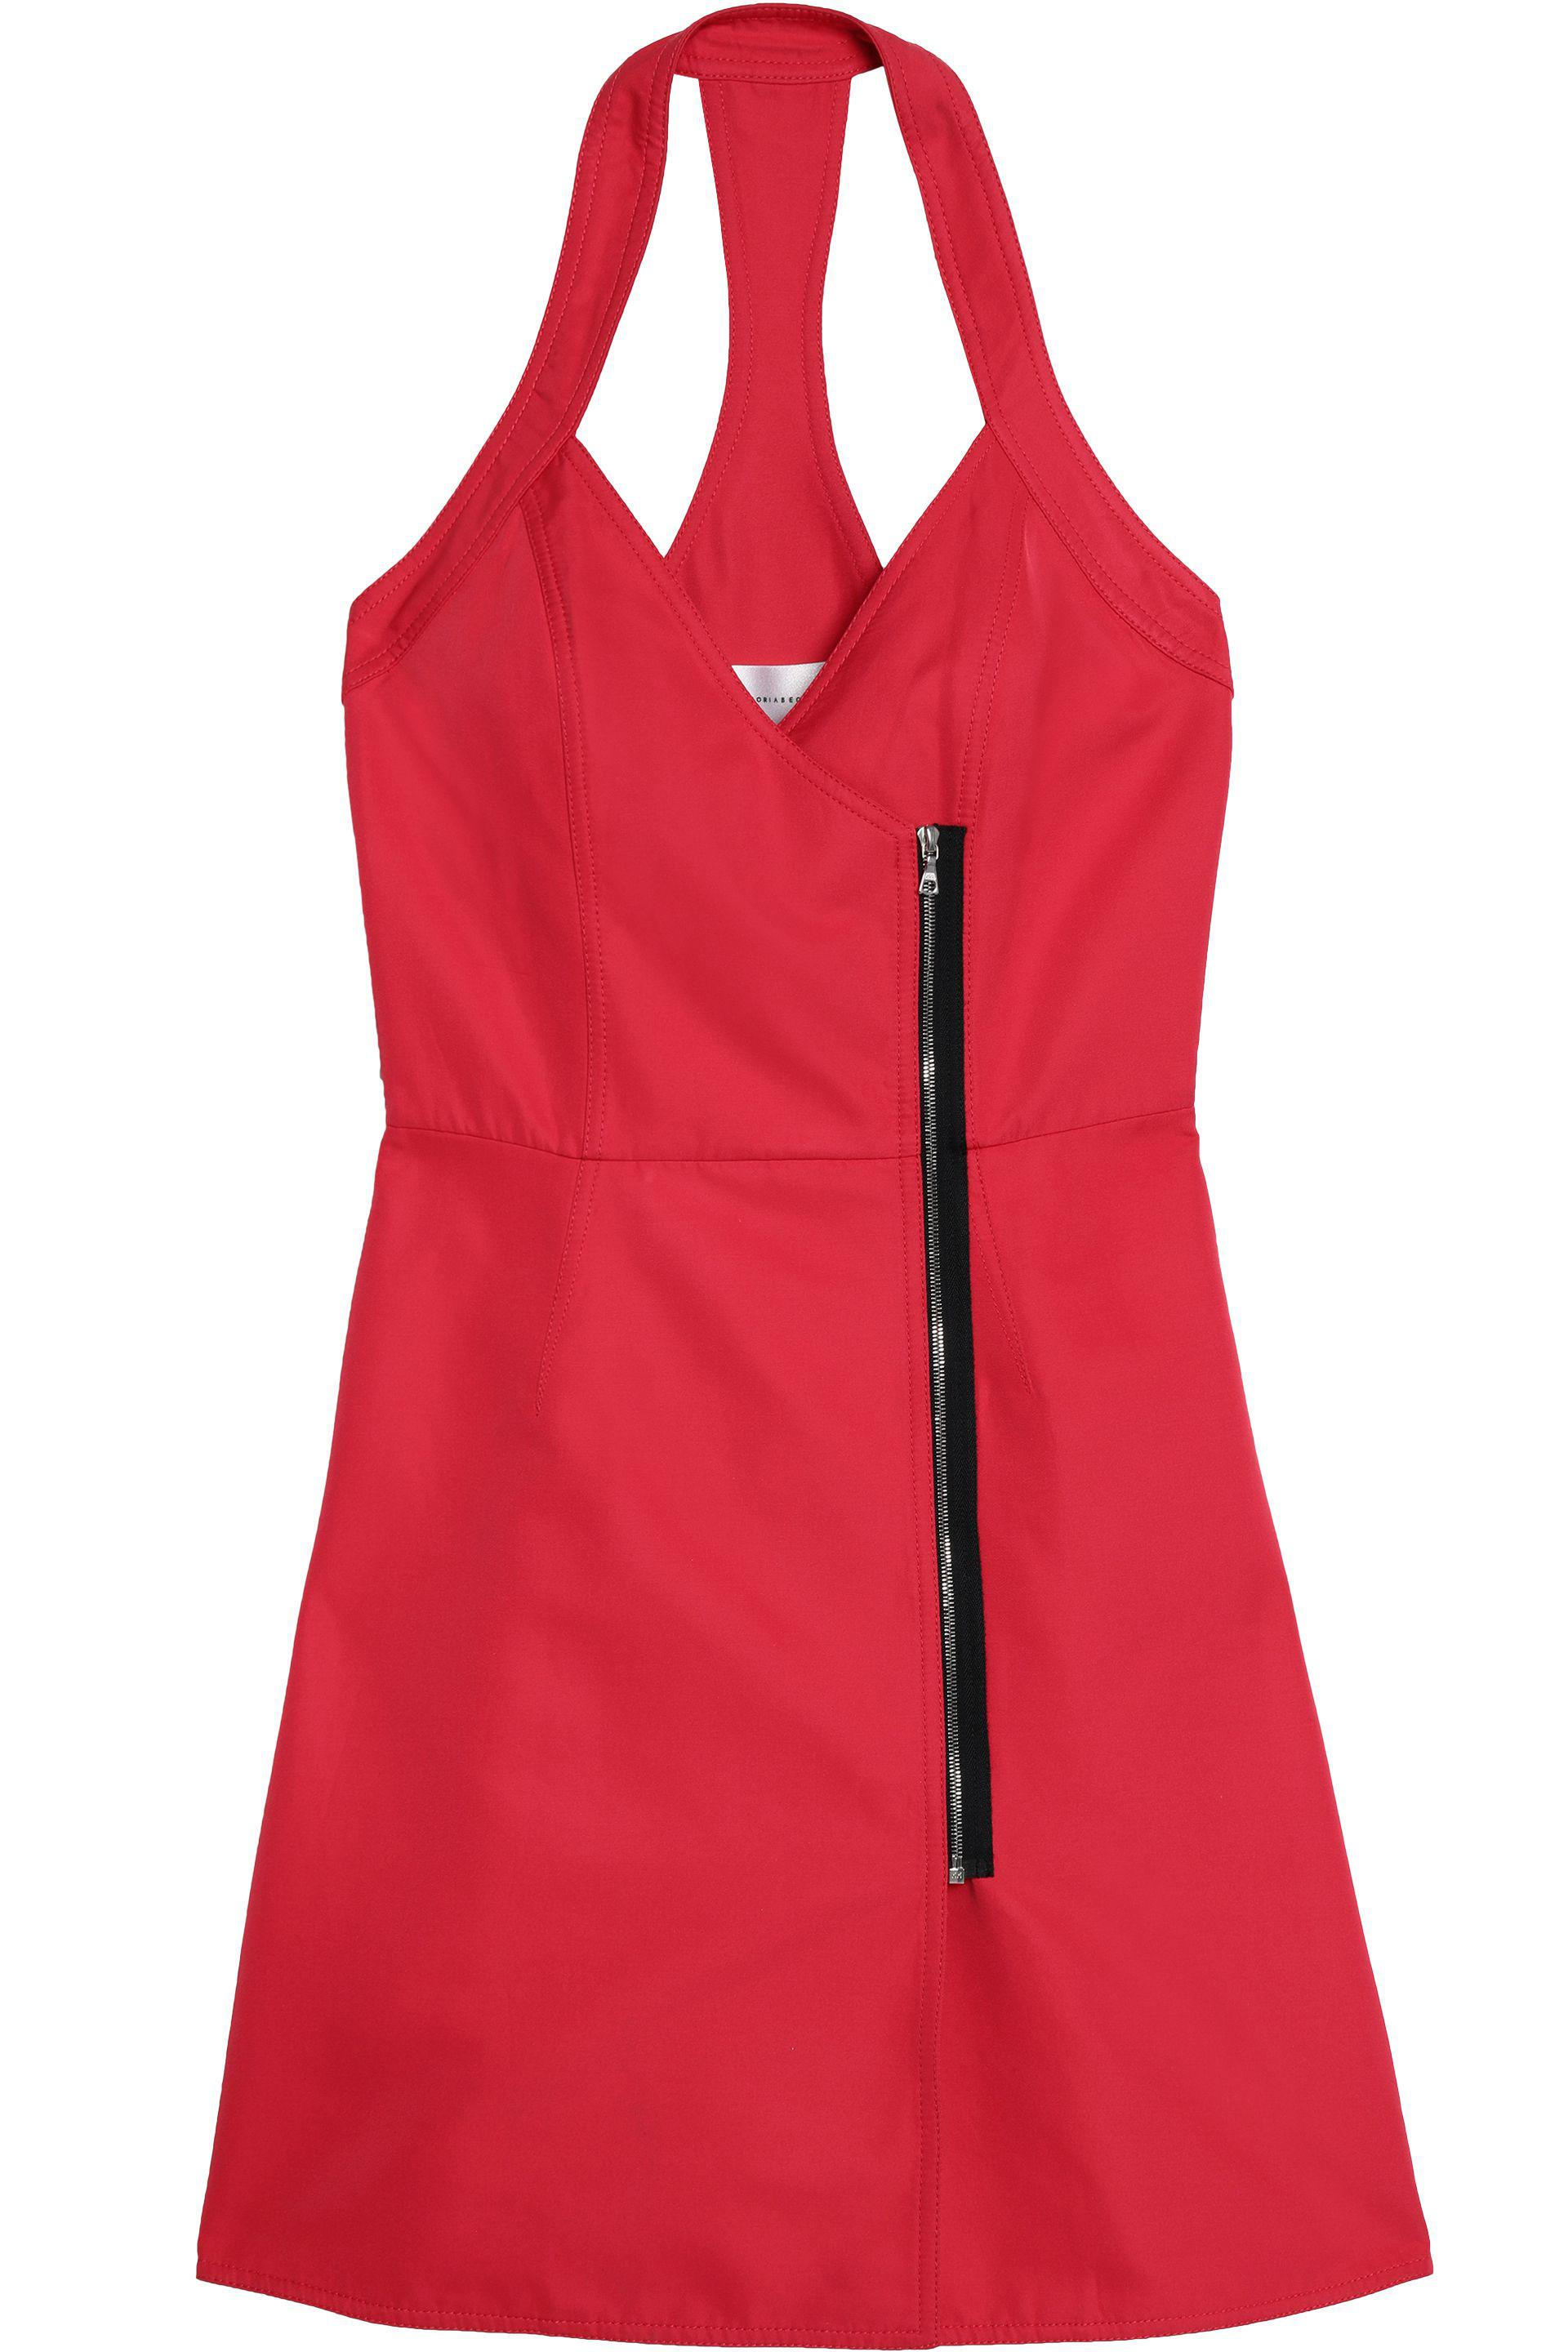 Victoria, Victoria Beckham Woman Open-back Zip-trimmed Twill Mini Dress Red Size 4 Victoria Beckham